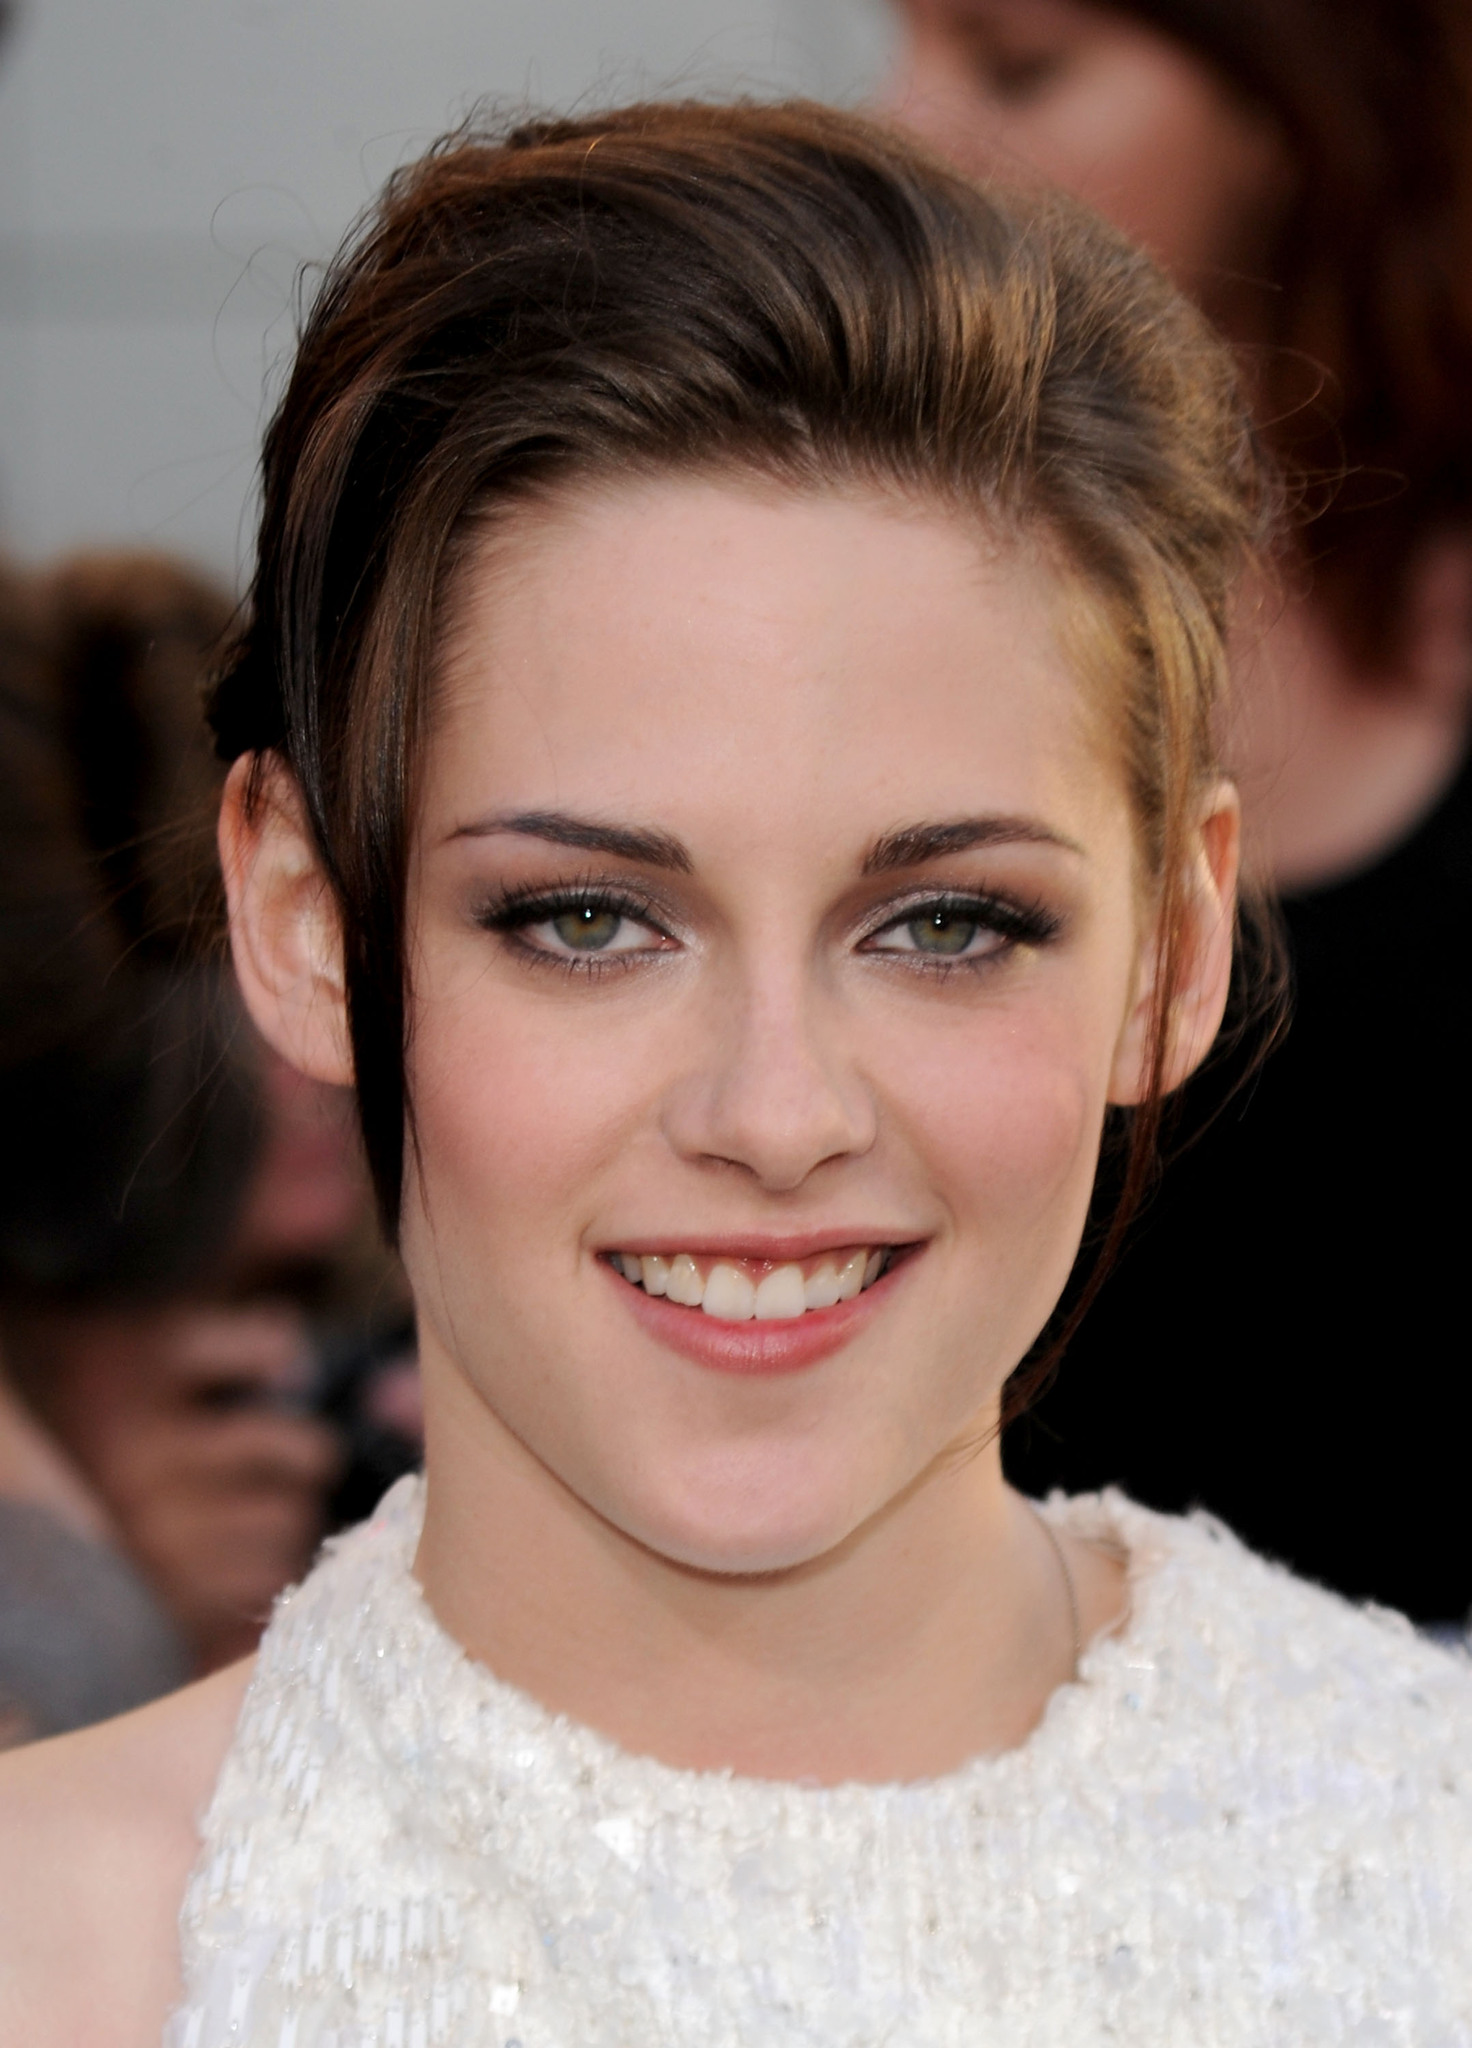 Paparazzi Kristen Stewart  nudes (49 fotos), YouTube, panties